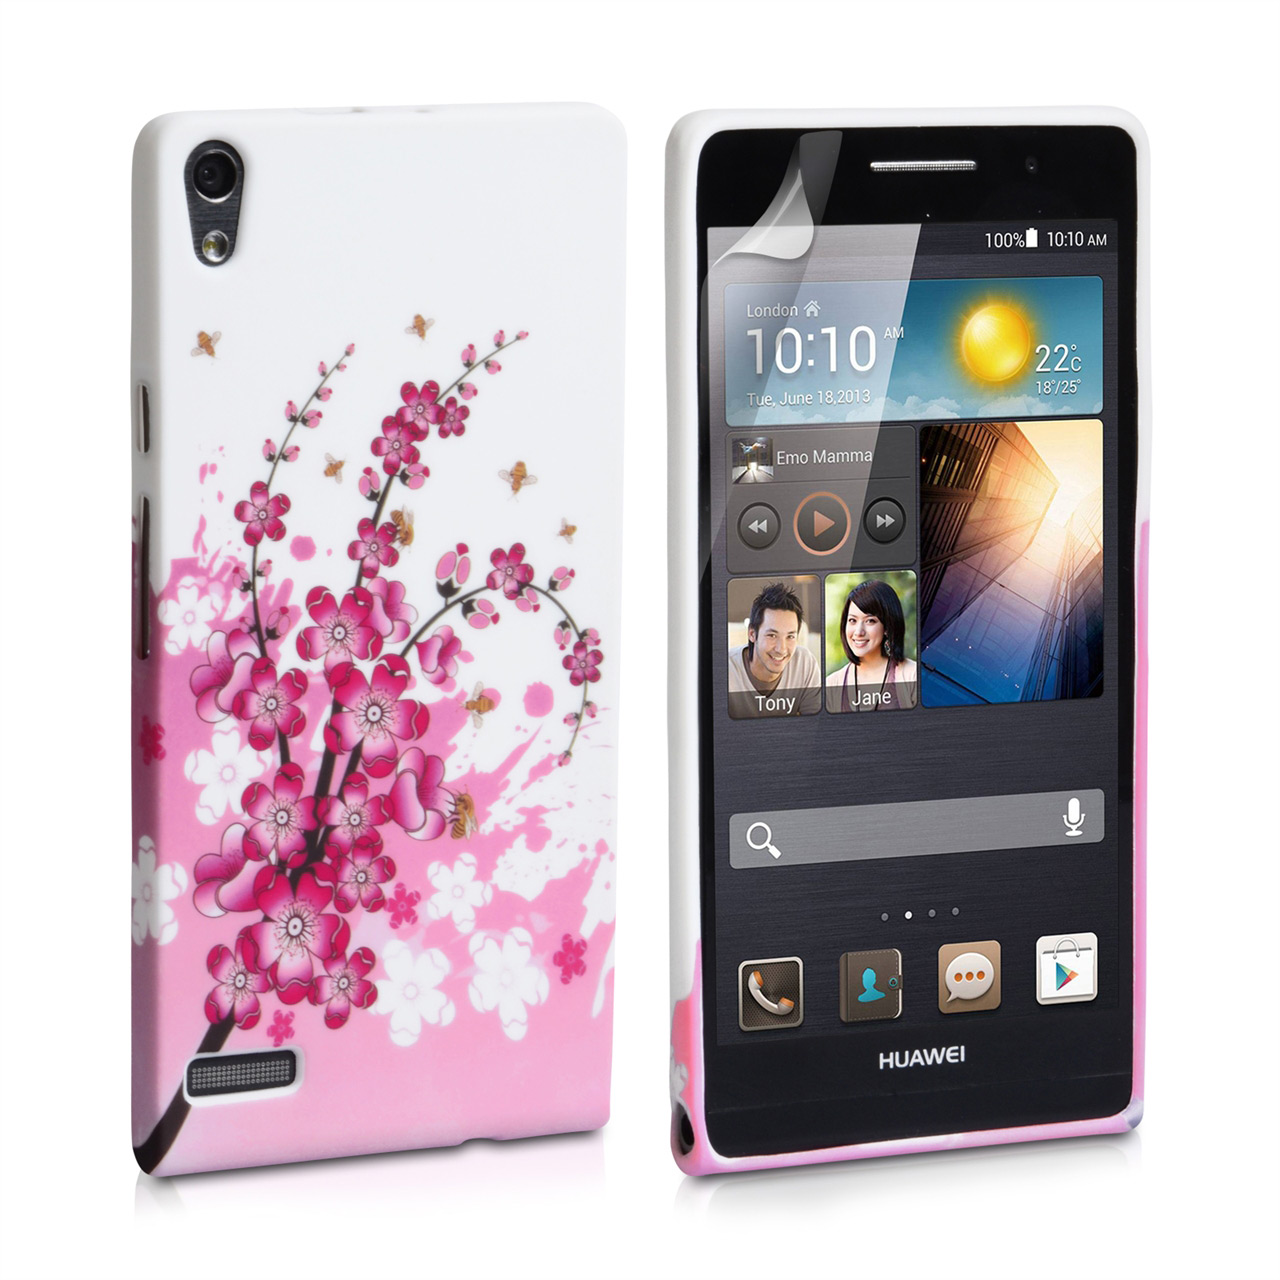 YouSave Accessories Huawei Ascend P6 Floral Bee Silicone Gel Case